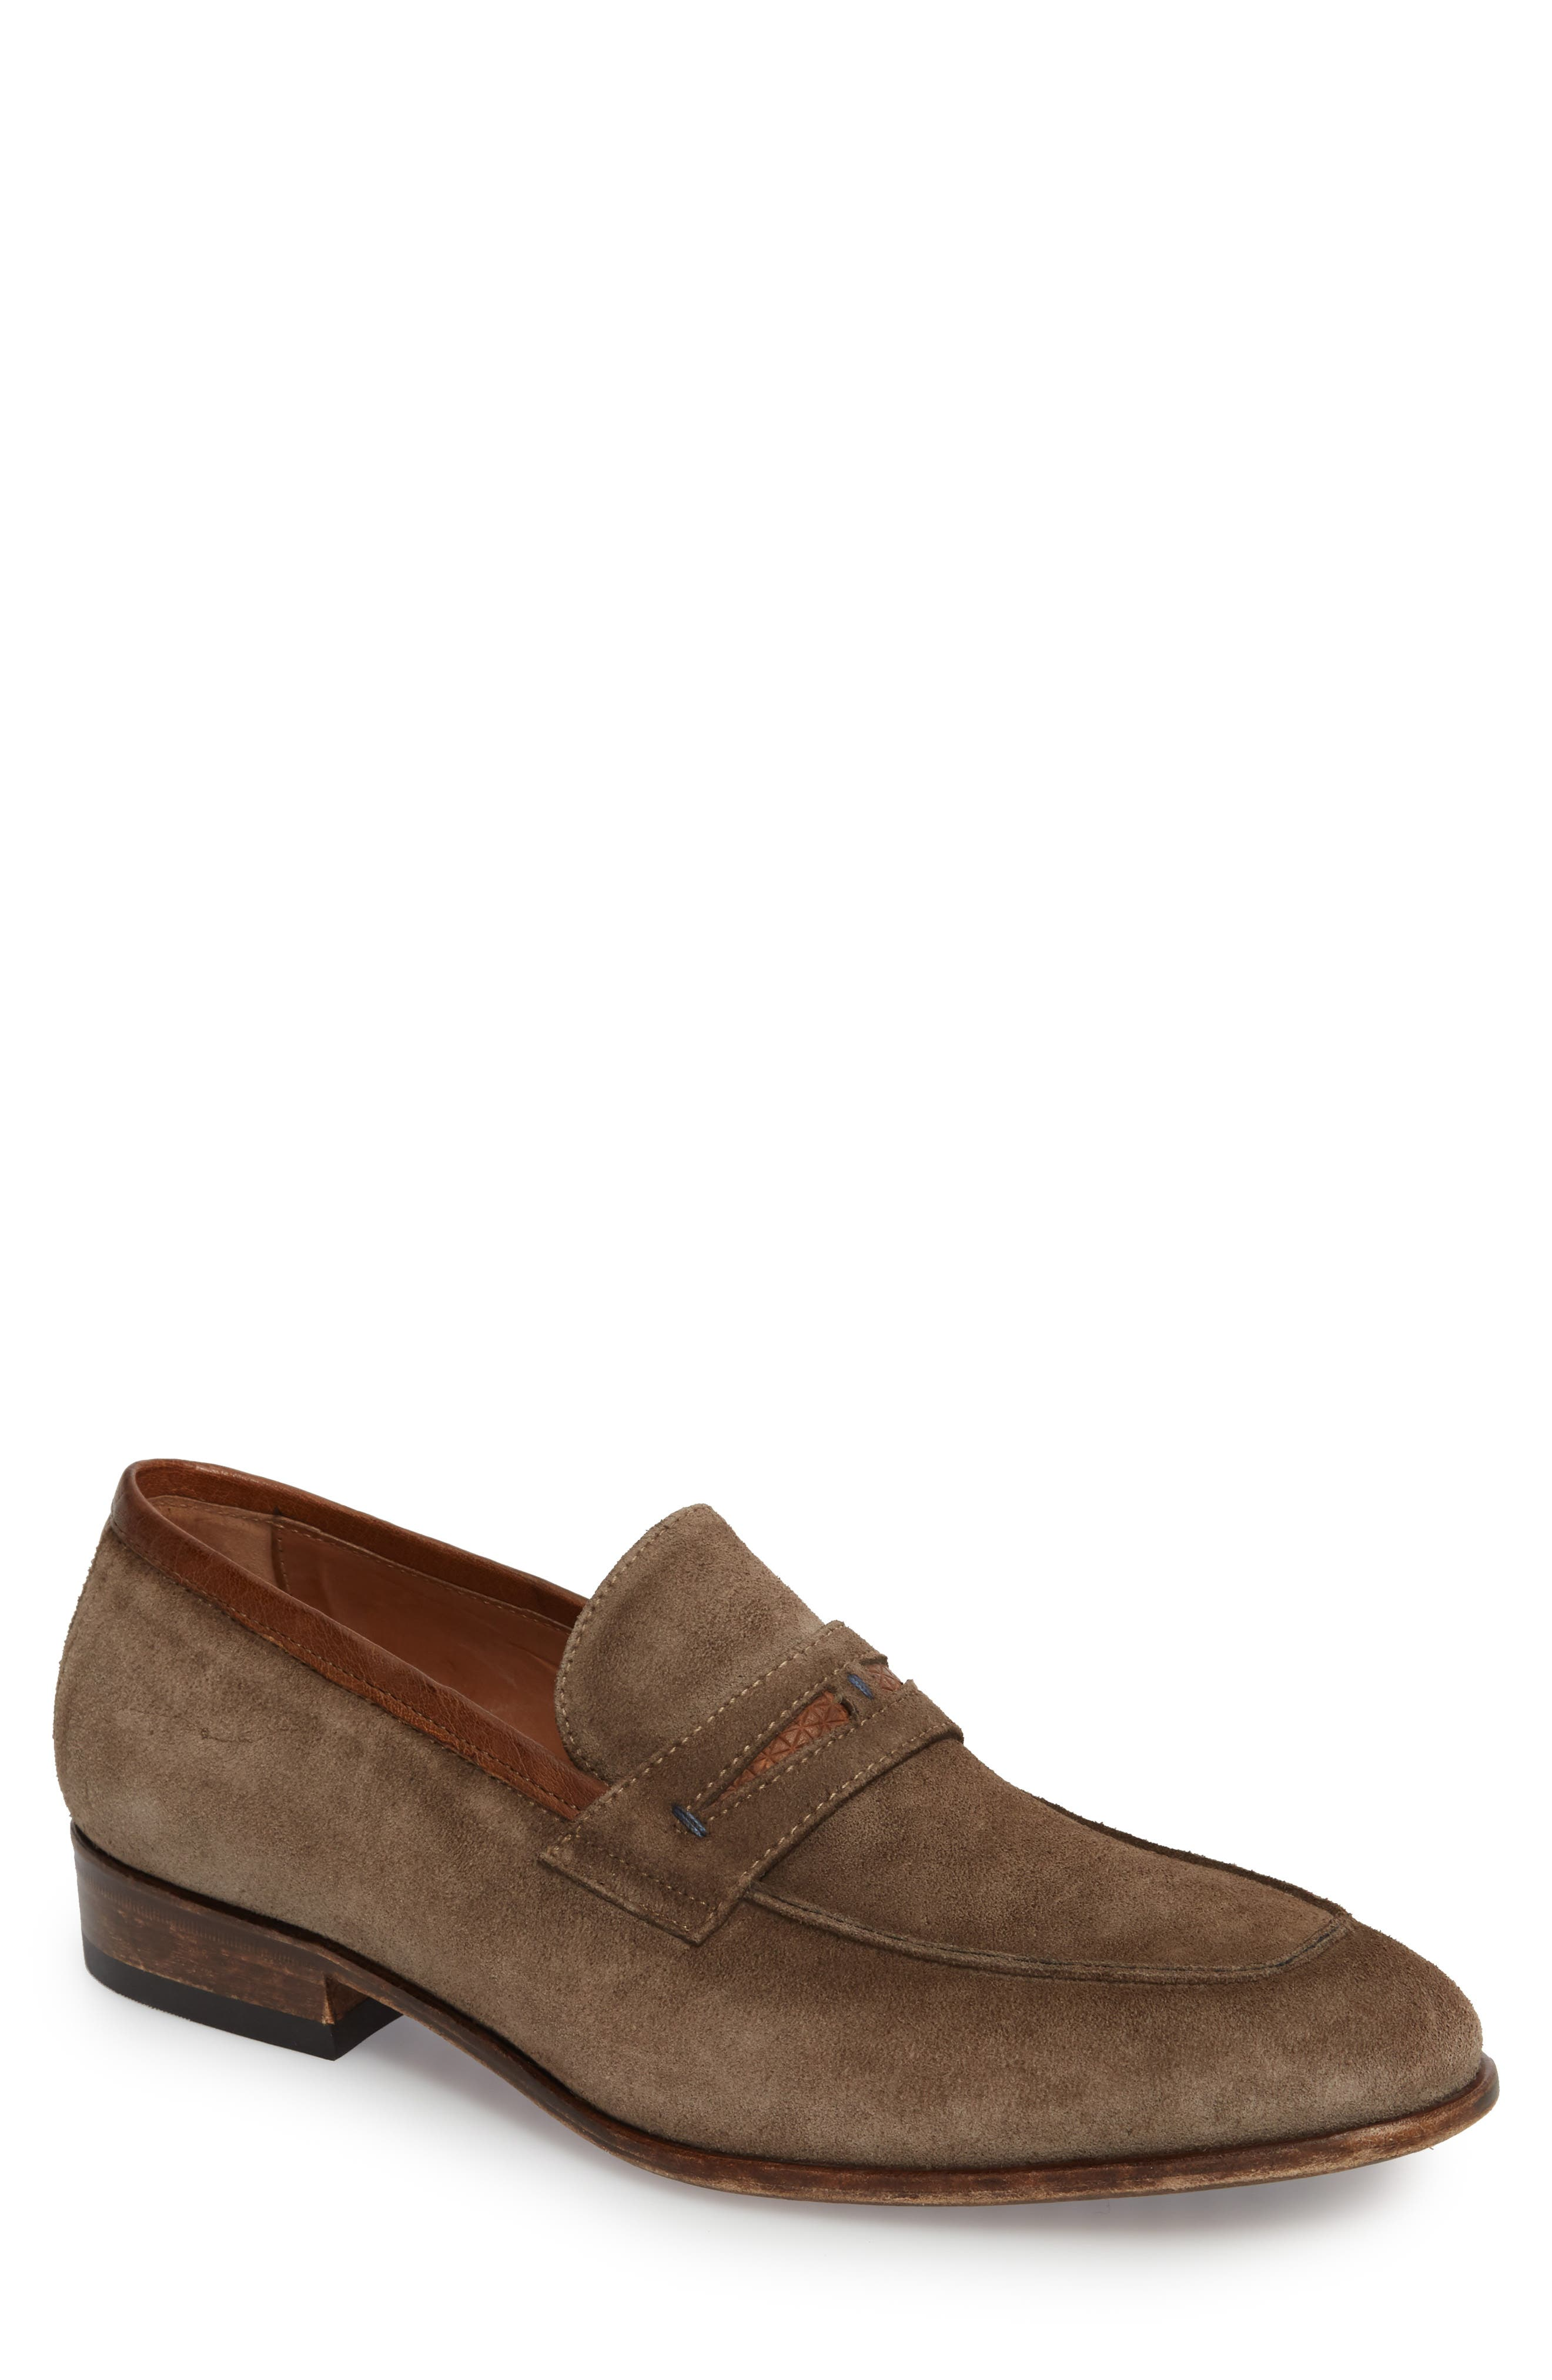 Lex Apron Toe Penny Loafer,                             Main thumbnail 1, color,